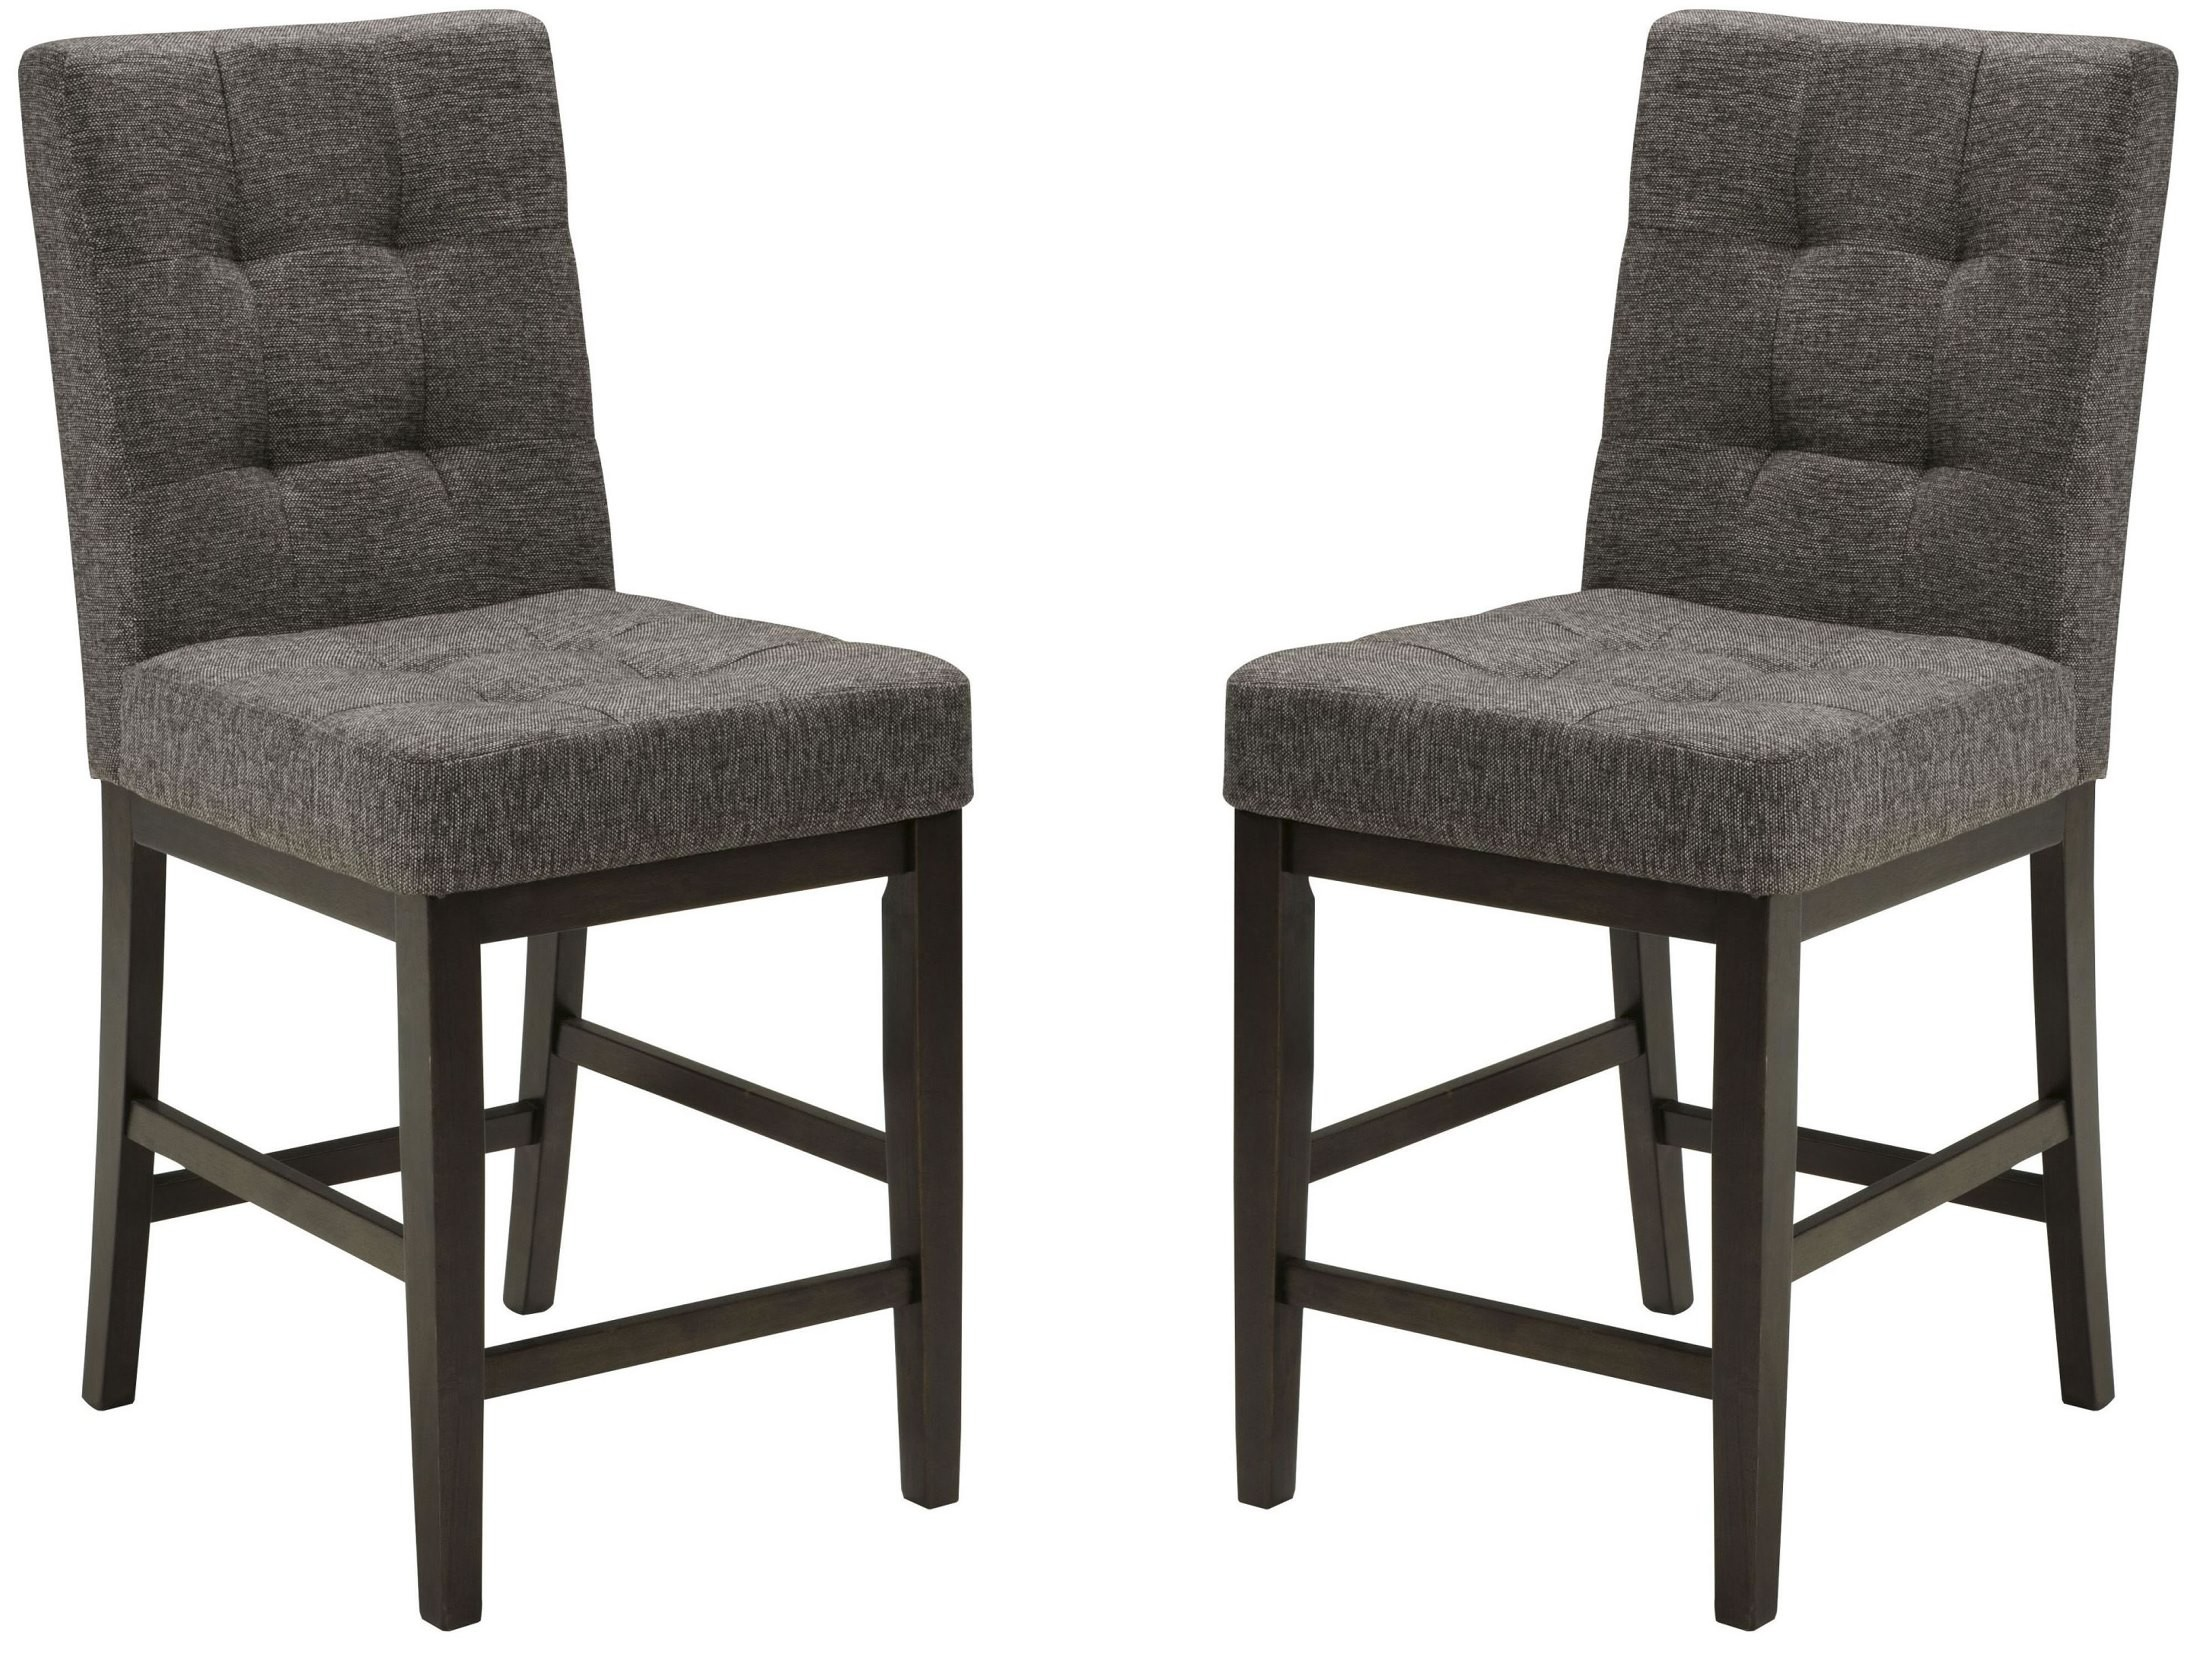 chanella dark gray upholstered barstool set of 2 from